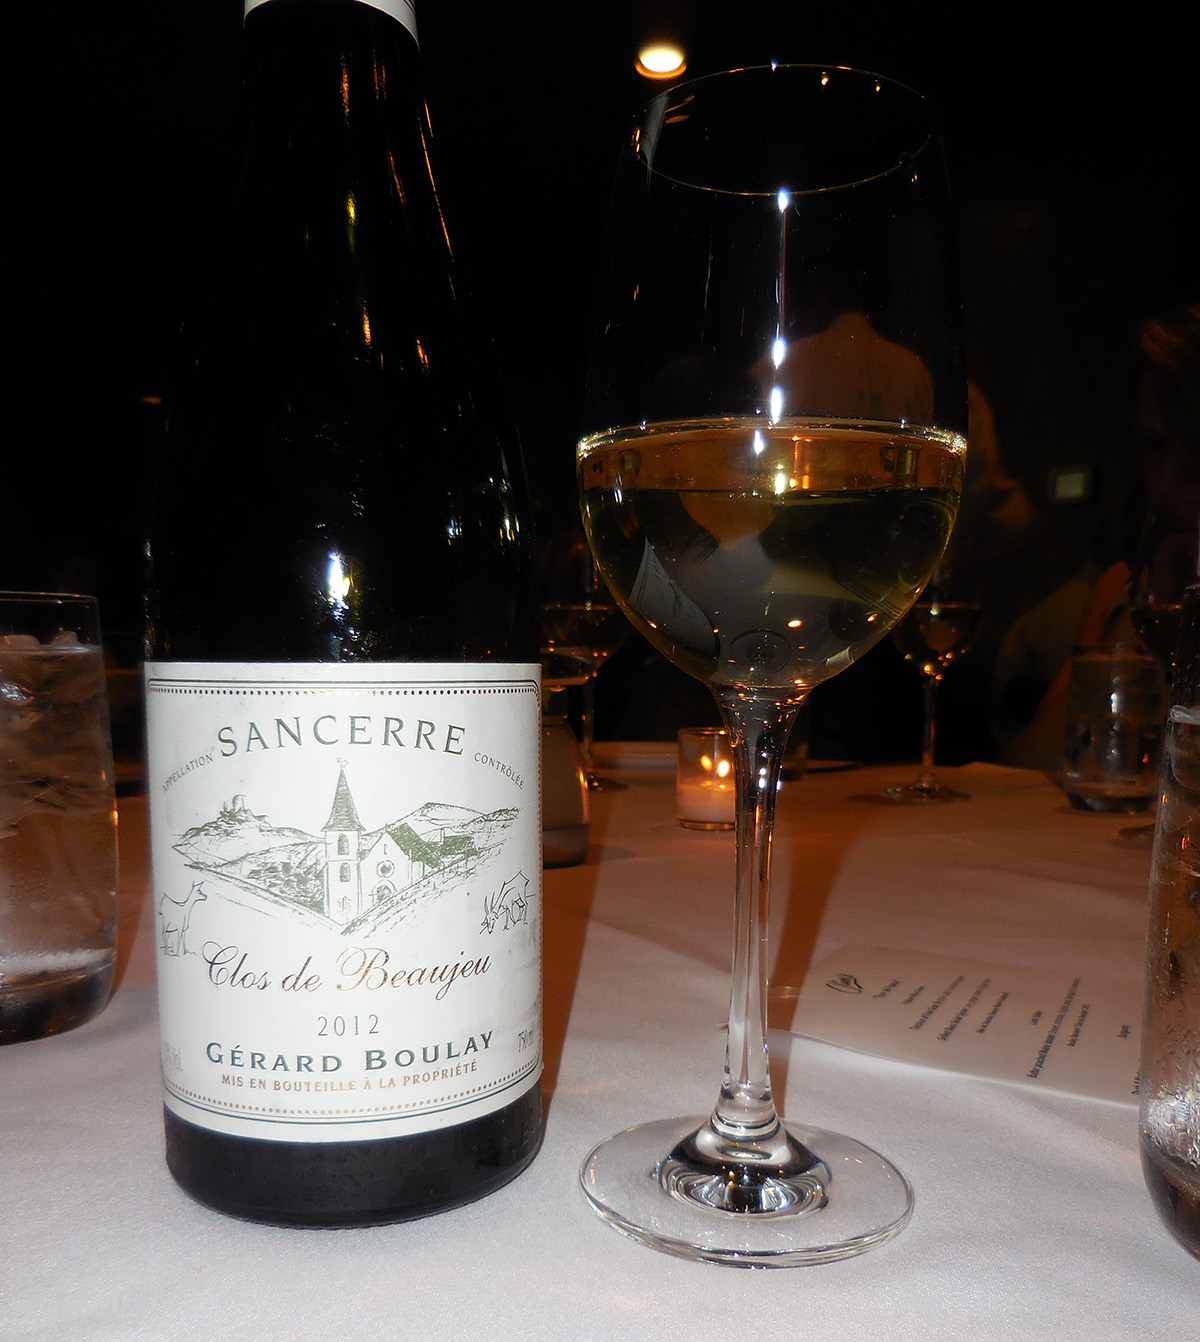 Gerard Boulay Sancerre